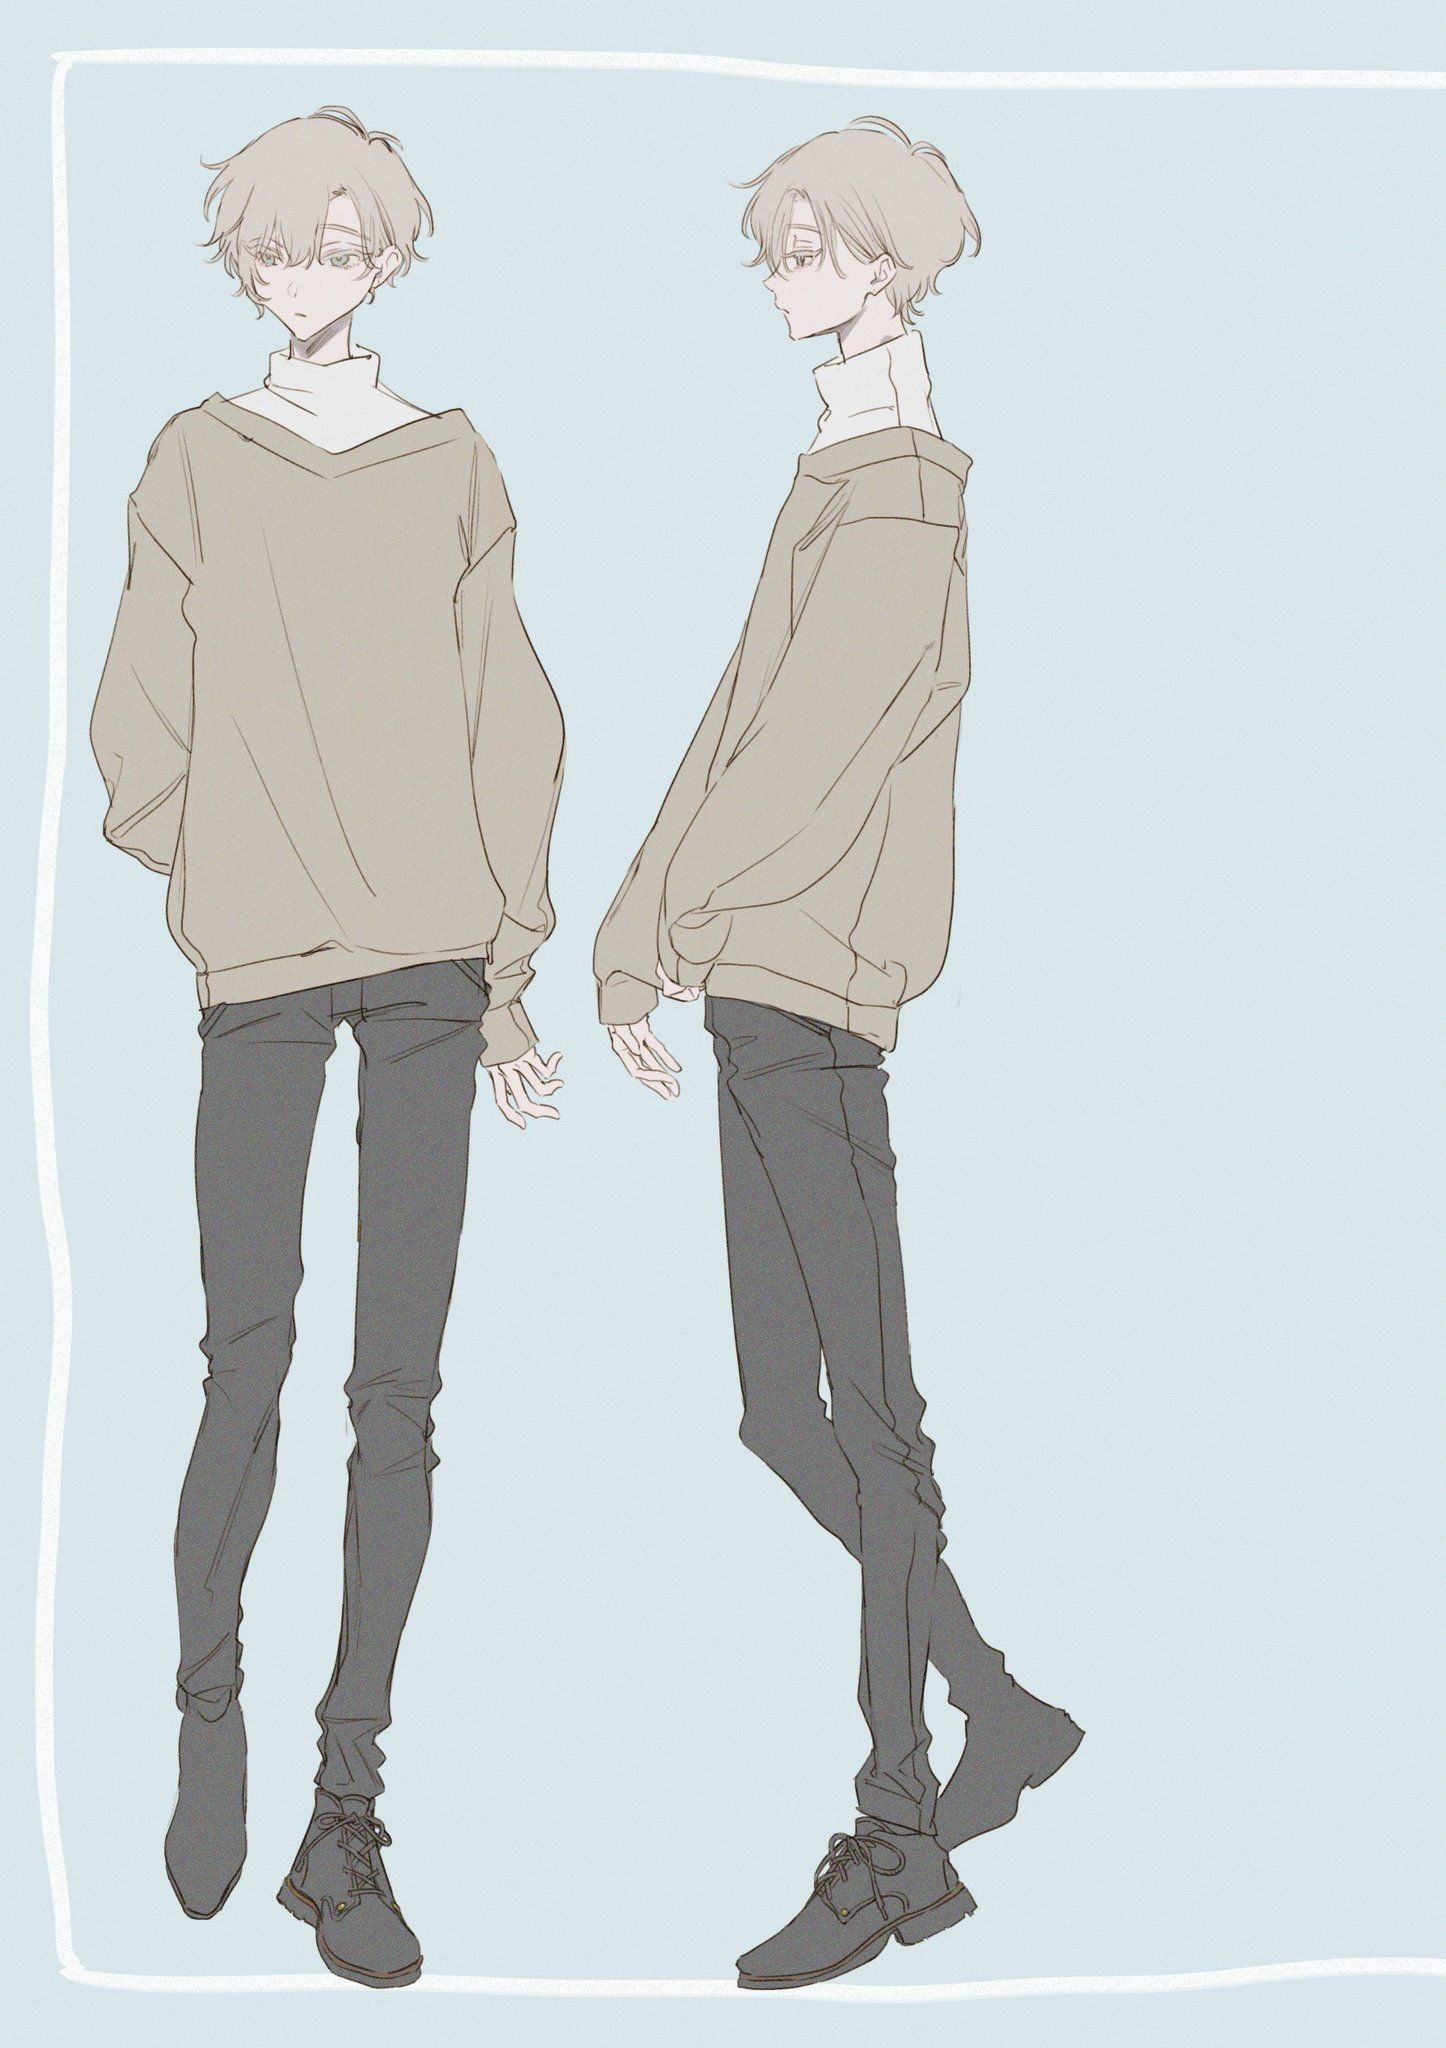 Anime Boy Clothes : anime, clothes, Animeface, #animemale, #animepersonagens, #animeposes, Drawing, Anime, Clothes,, Character, Design